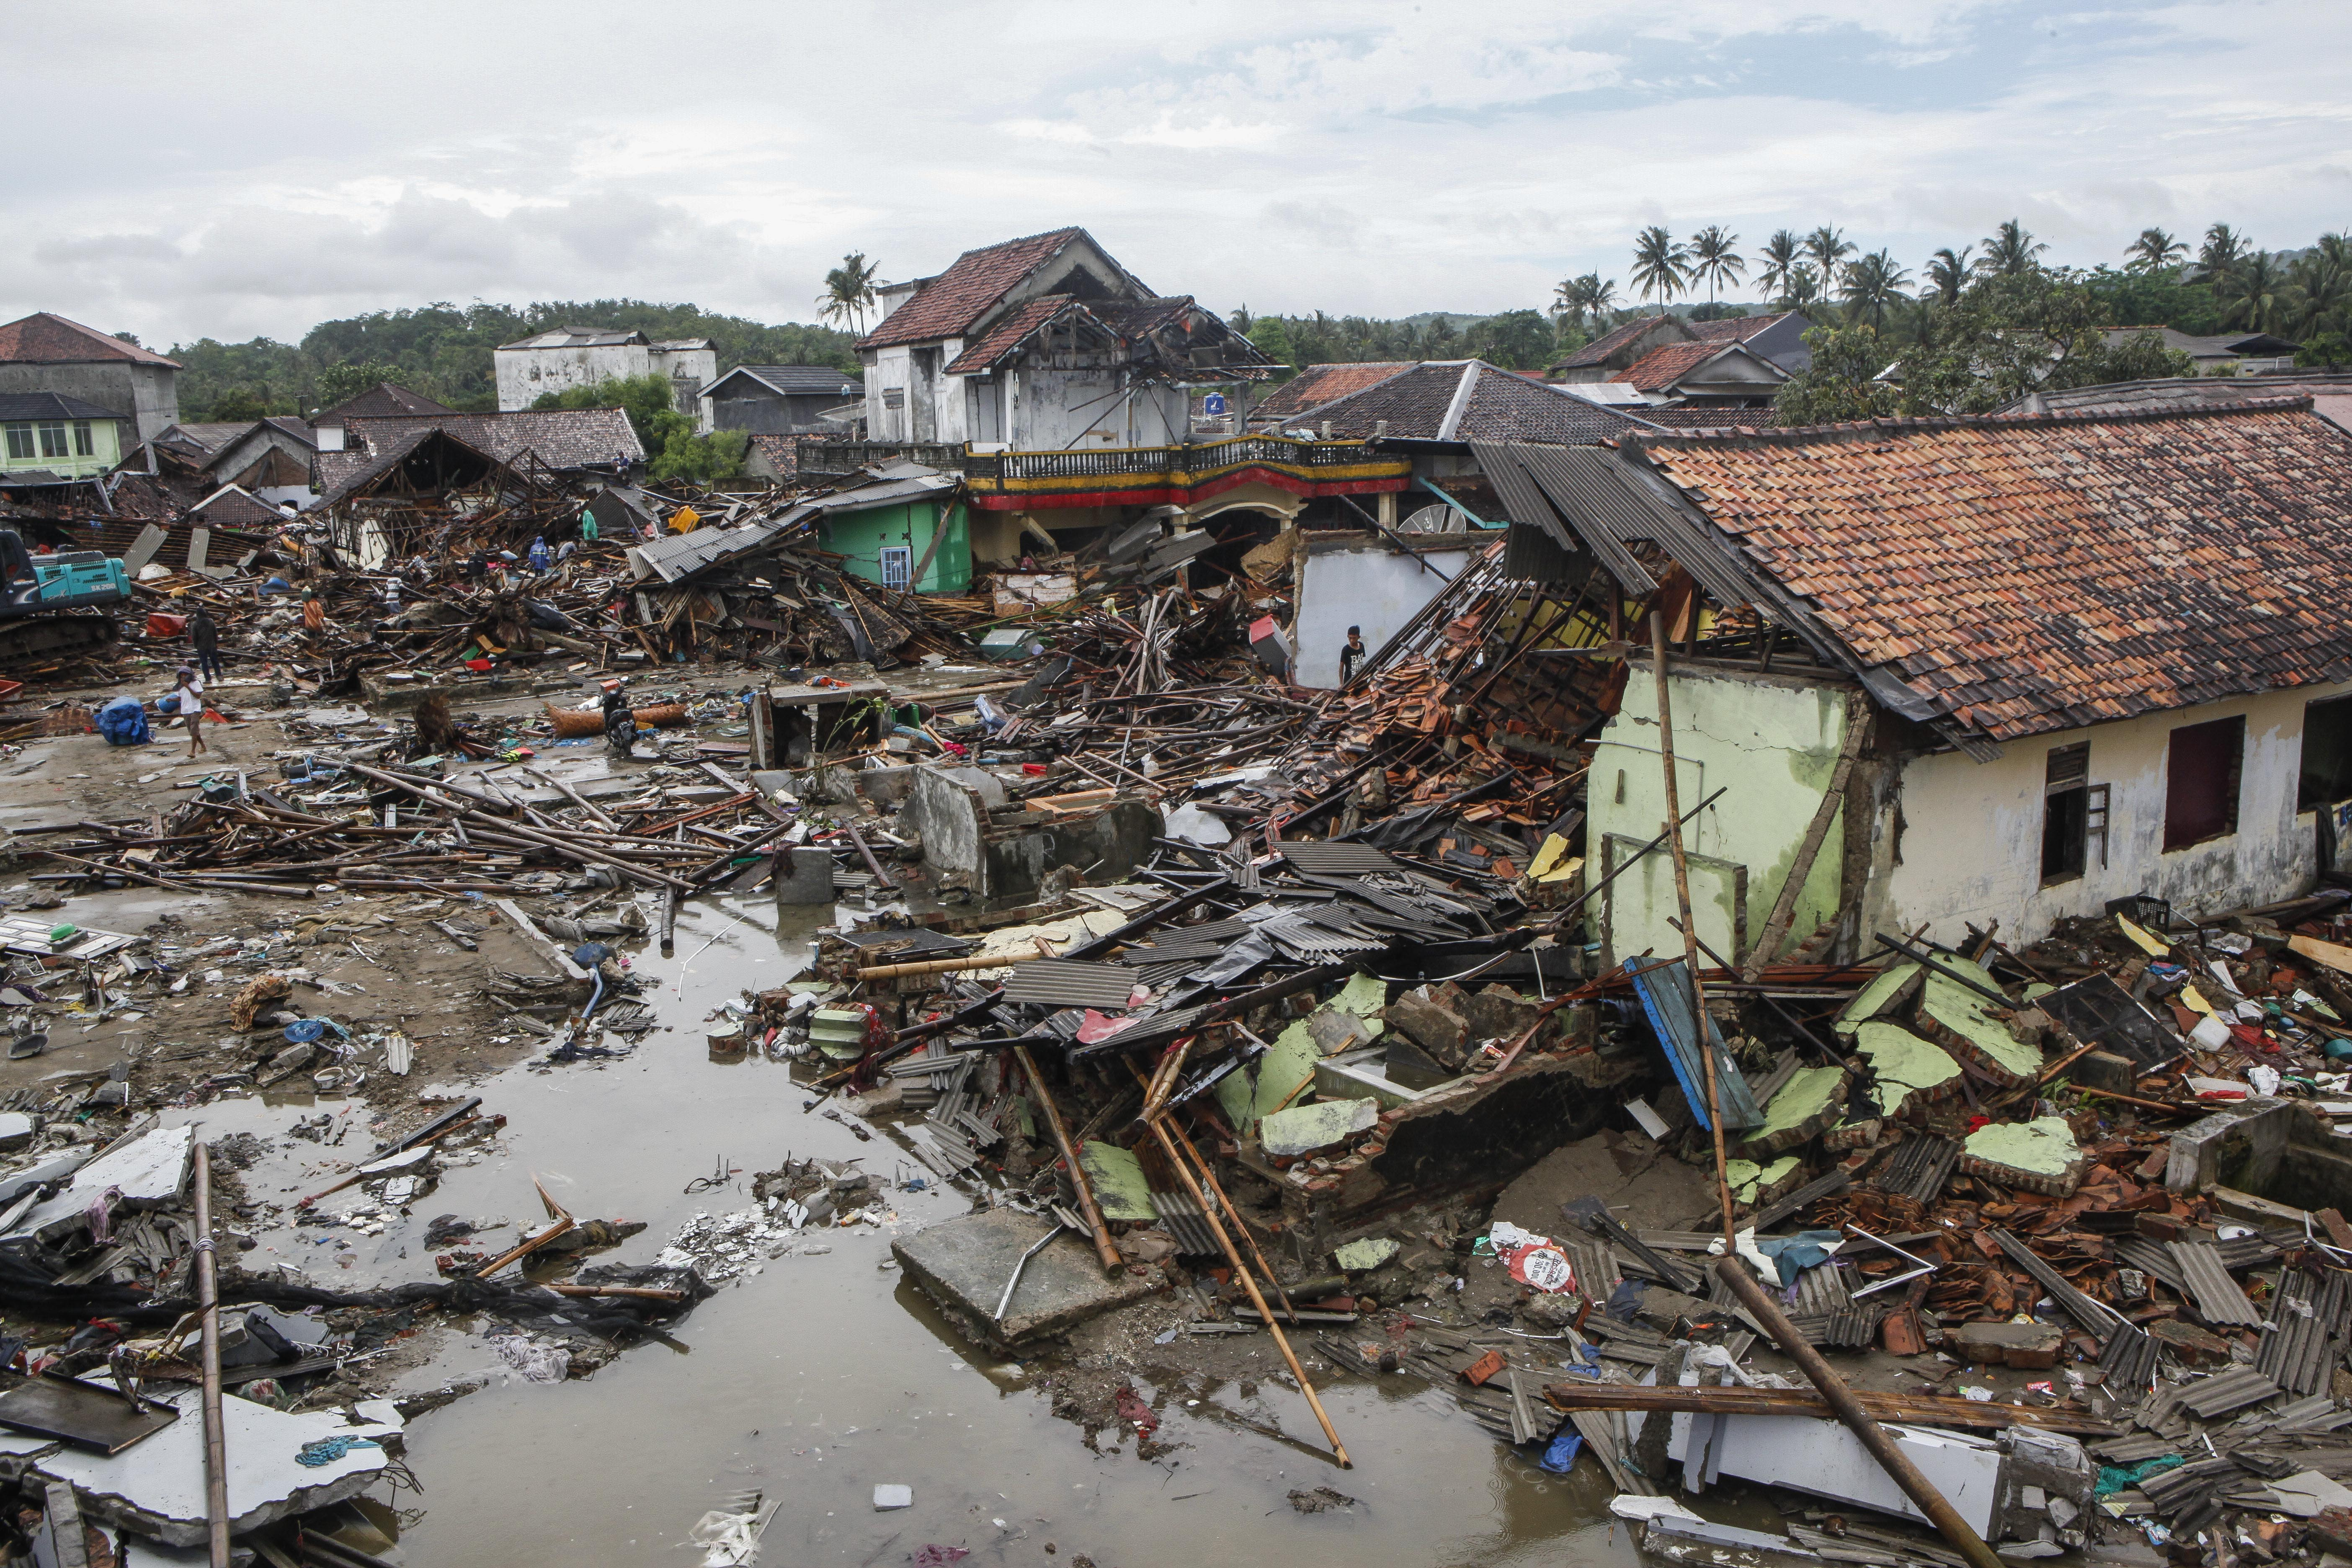 After the Tsunami in Indonesia's Sunda Strait